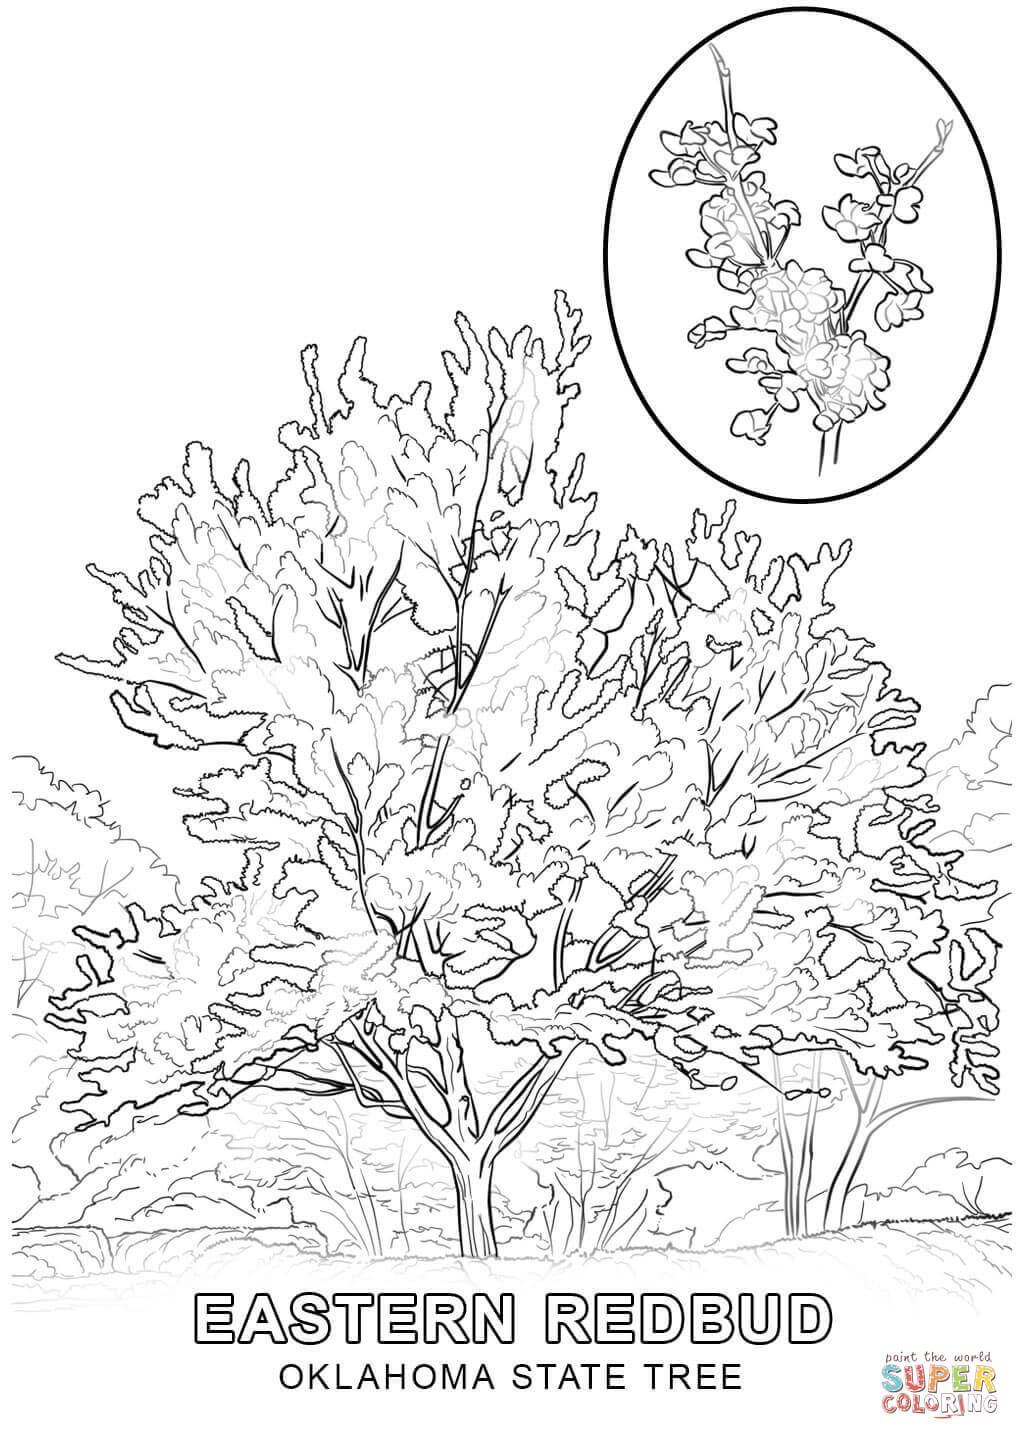 Click The Oklahoma State Tree Coloring Pages To View Printable